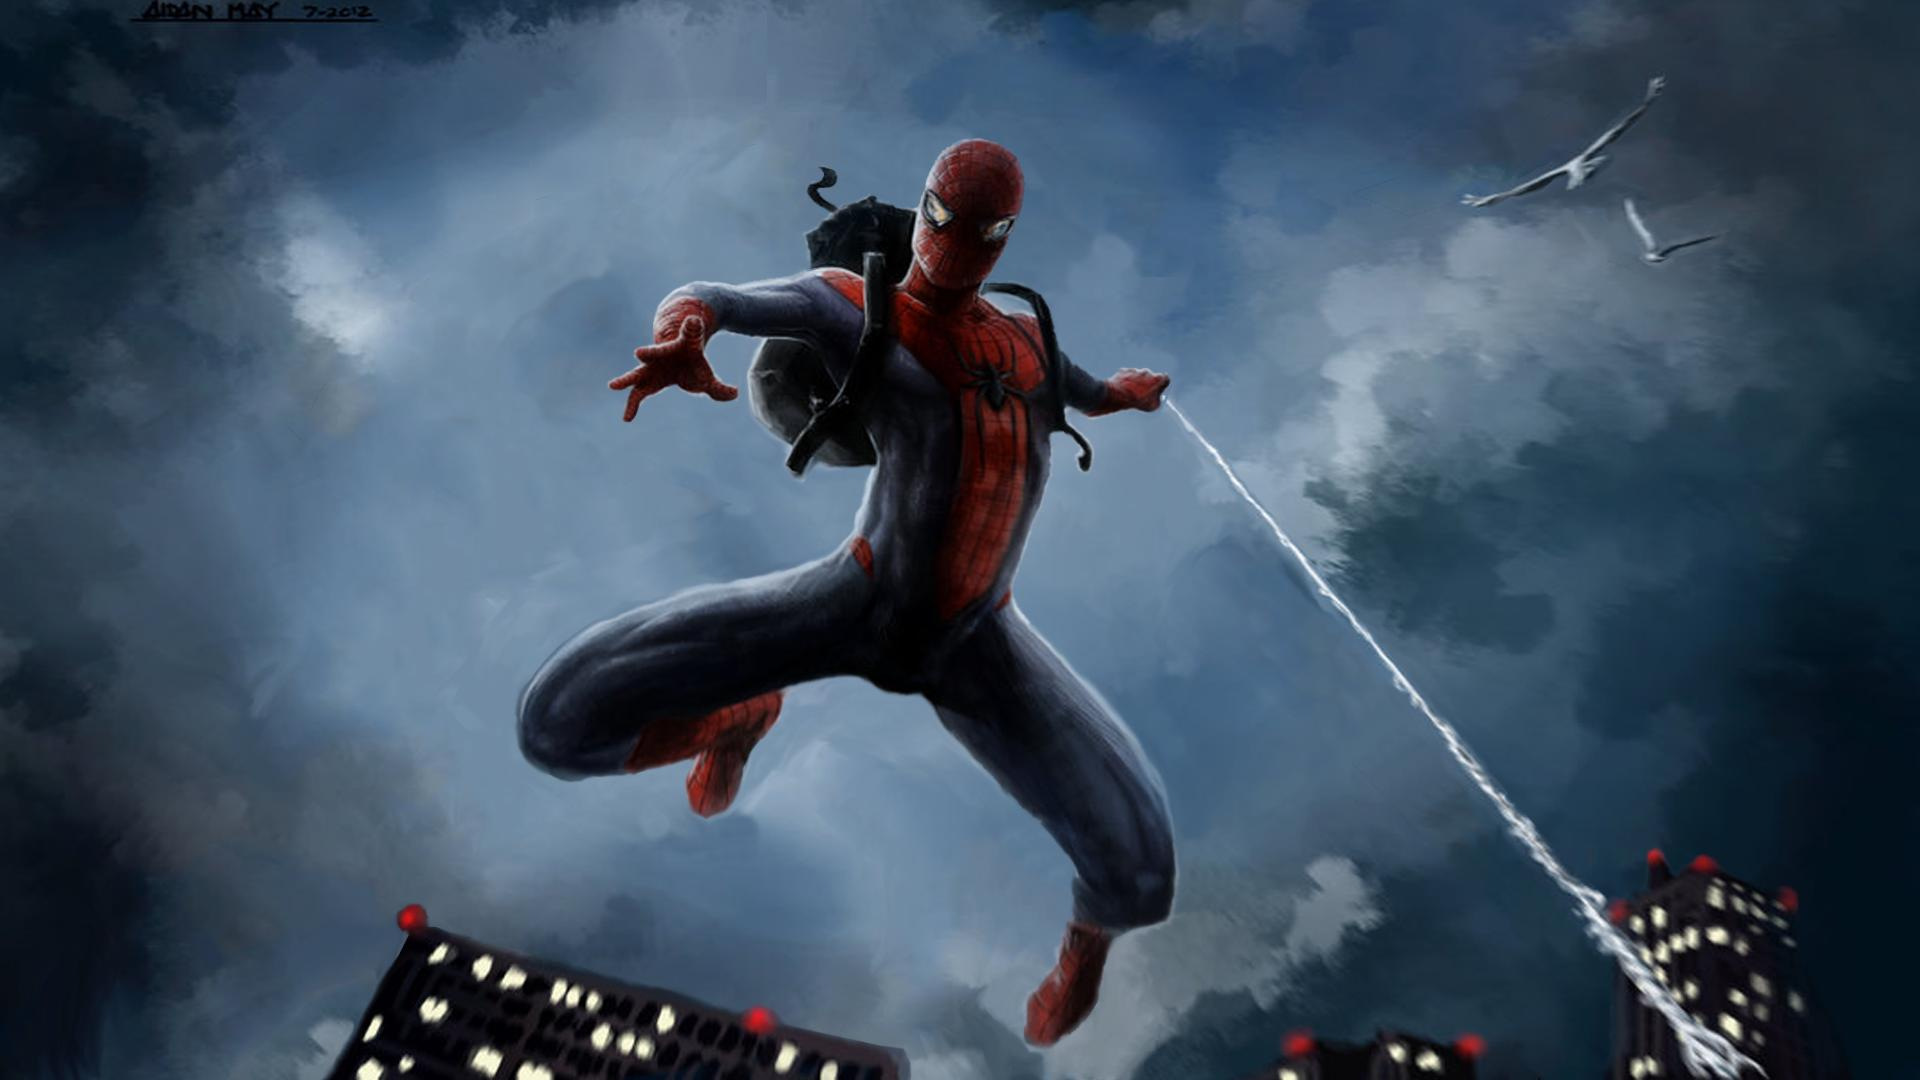 Amazing Wallpaper High Resolution Spiderman - latest?cb\u003d20160304142041  Graphic_23787.jpg/revision/latest?cb\u003d20160304142041